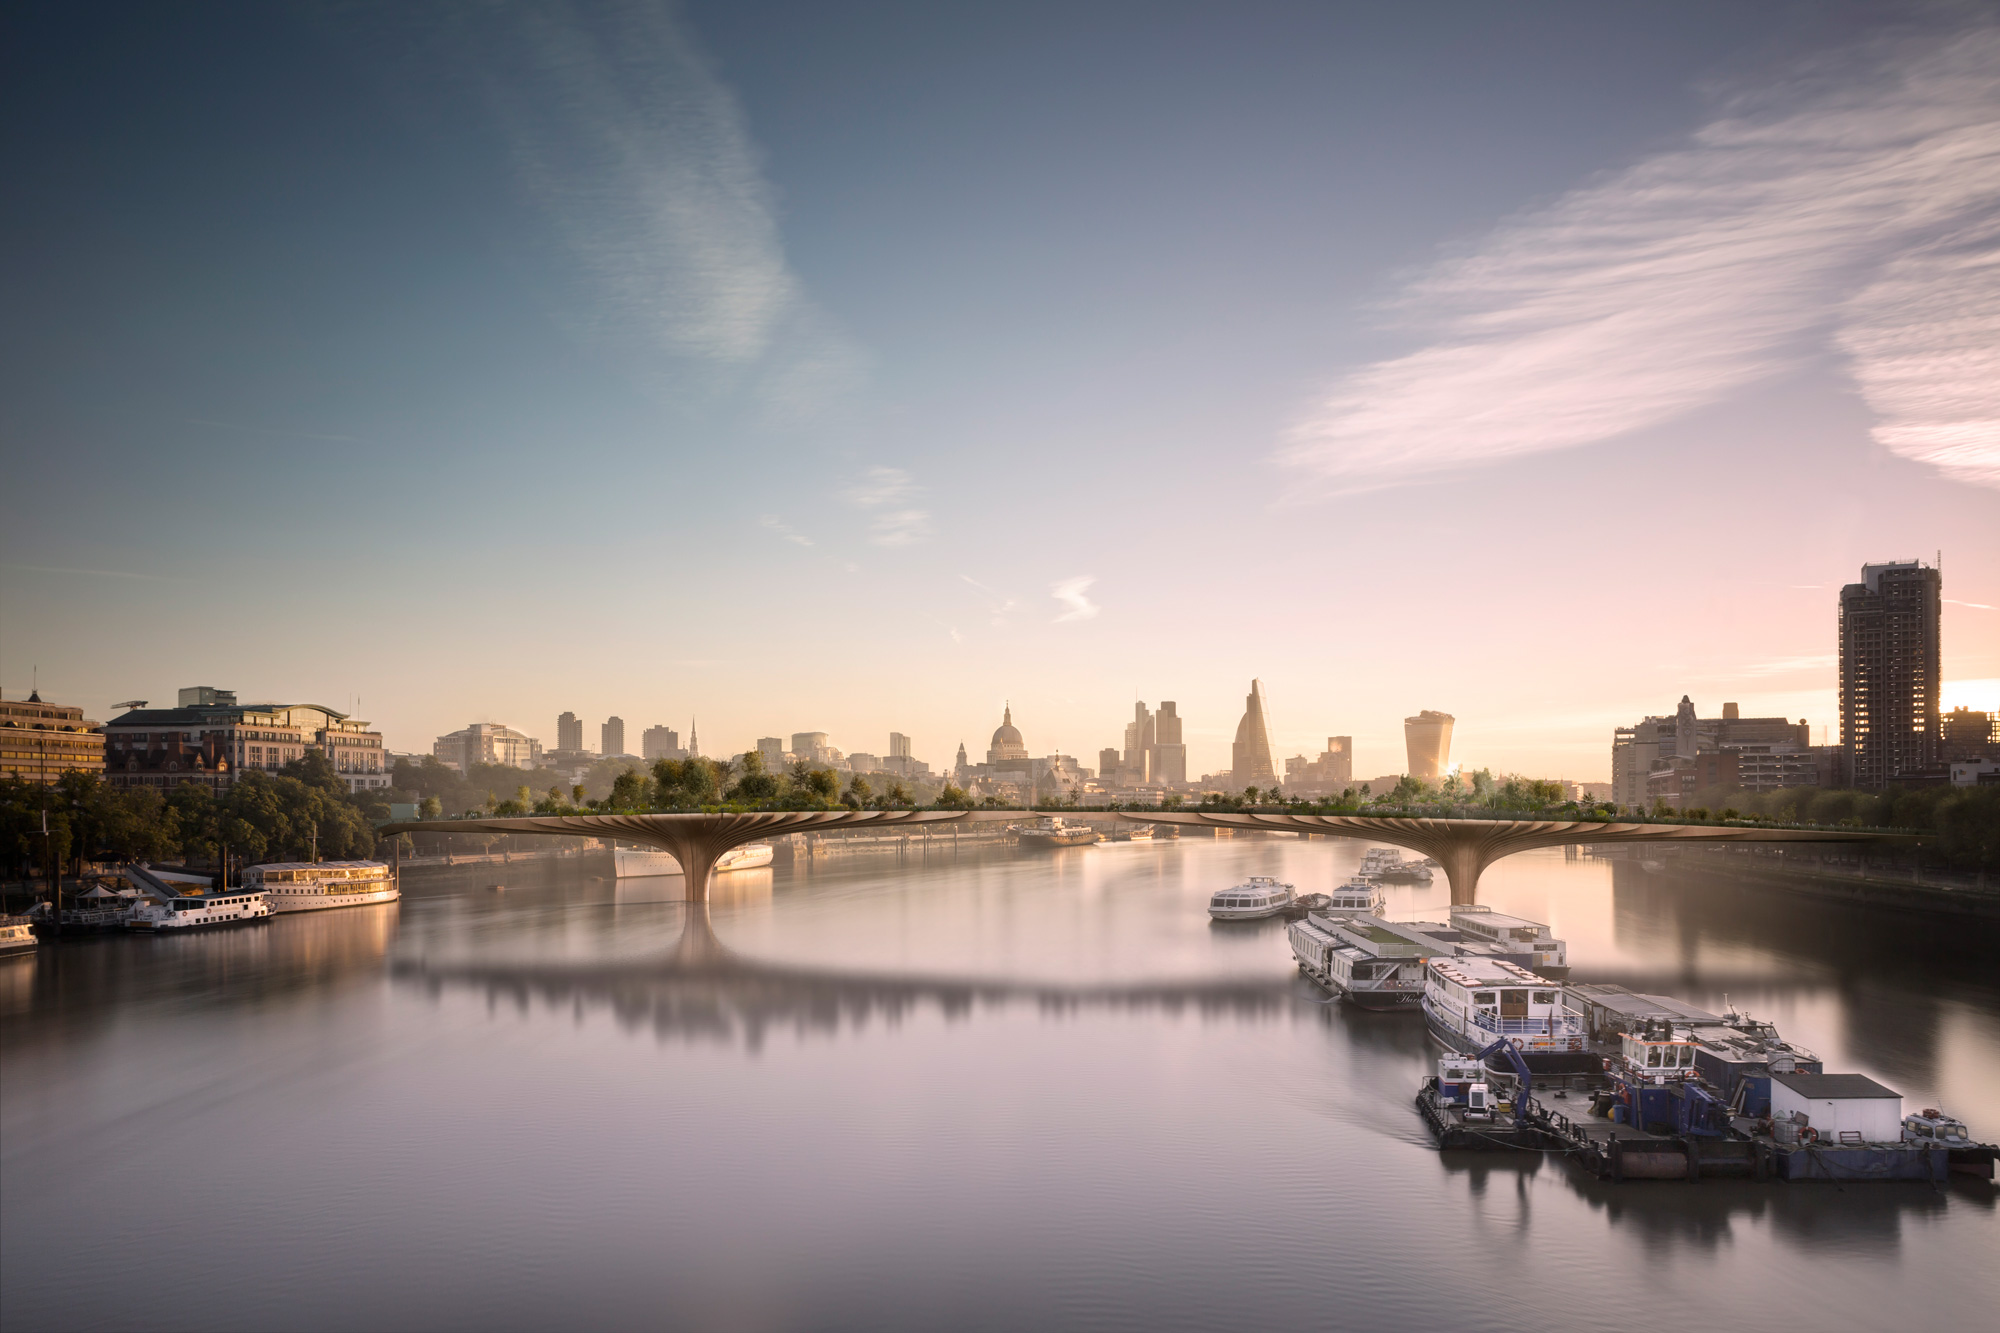 Garden Bridge London (1)